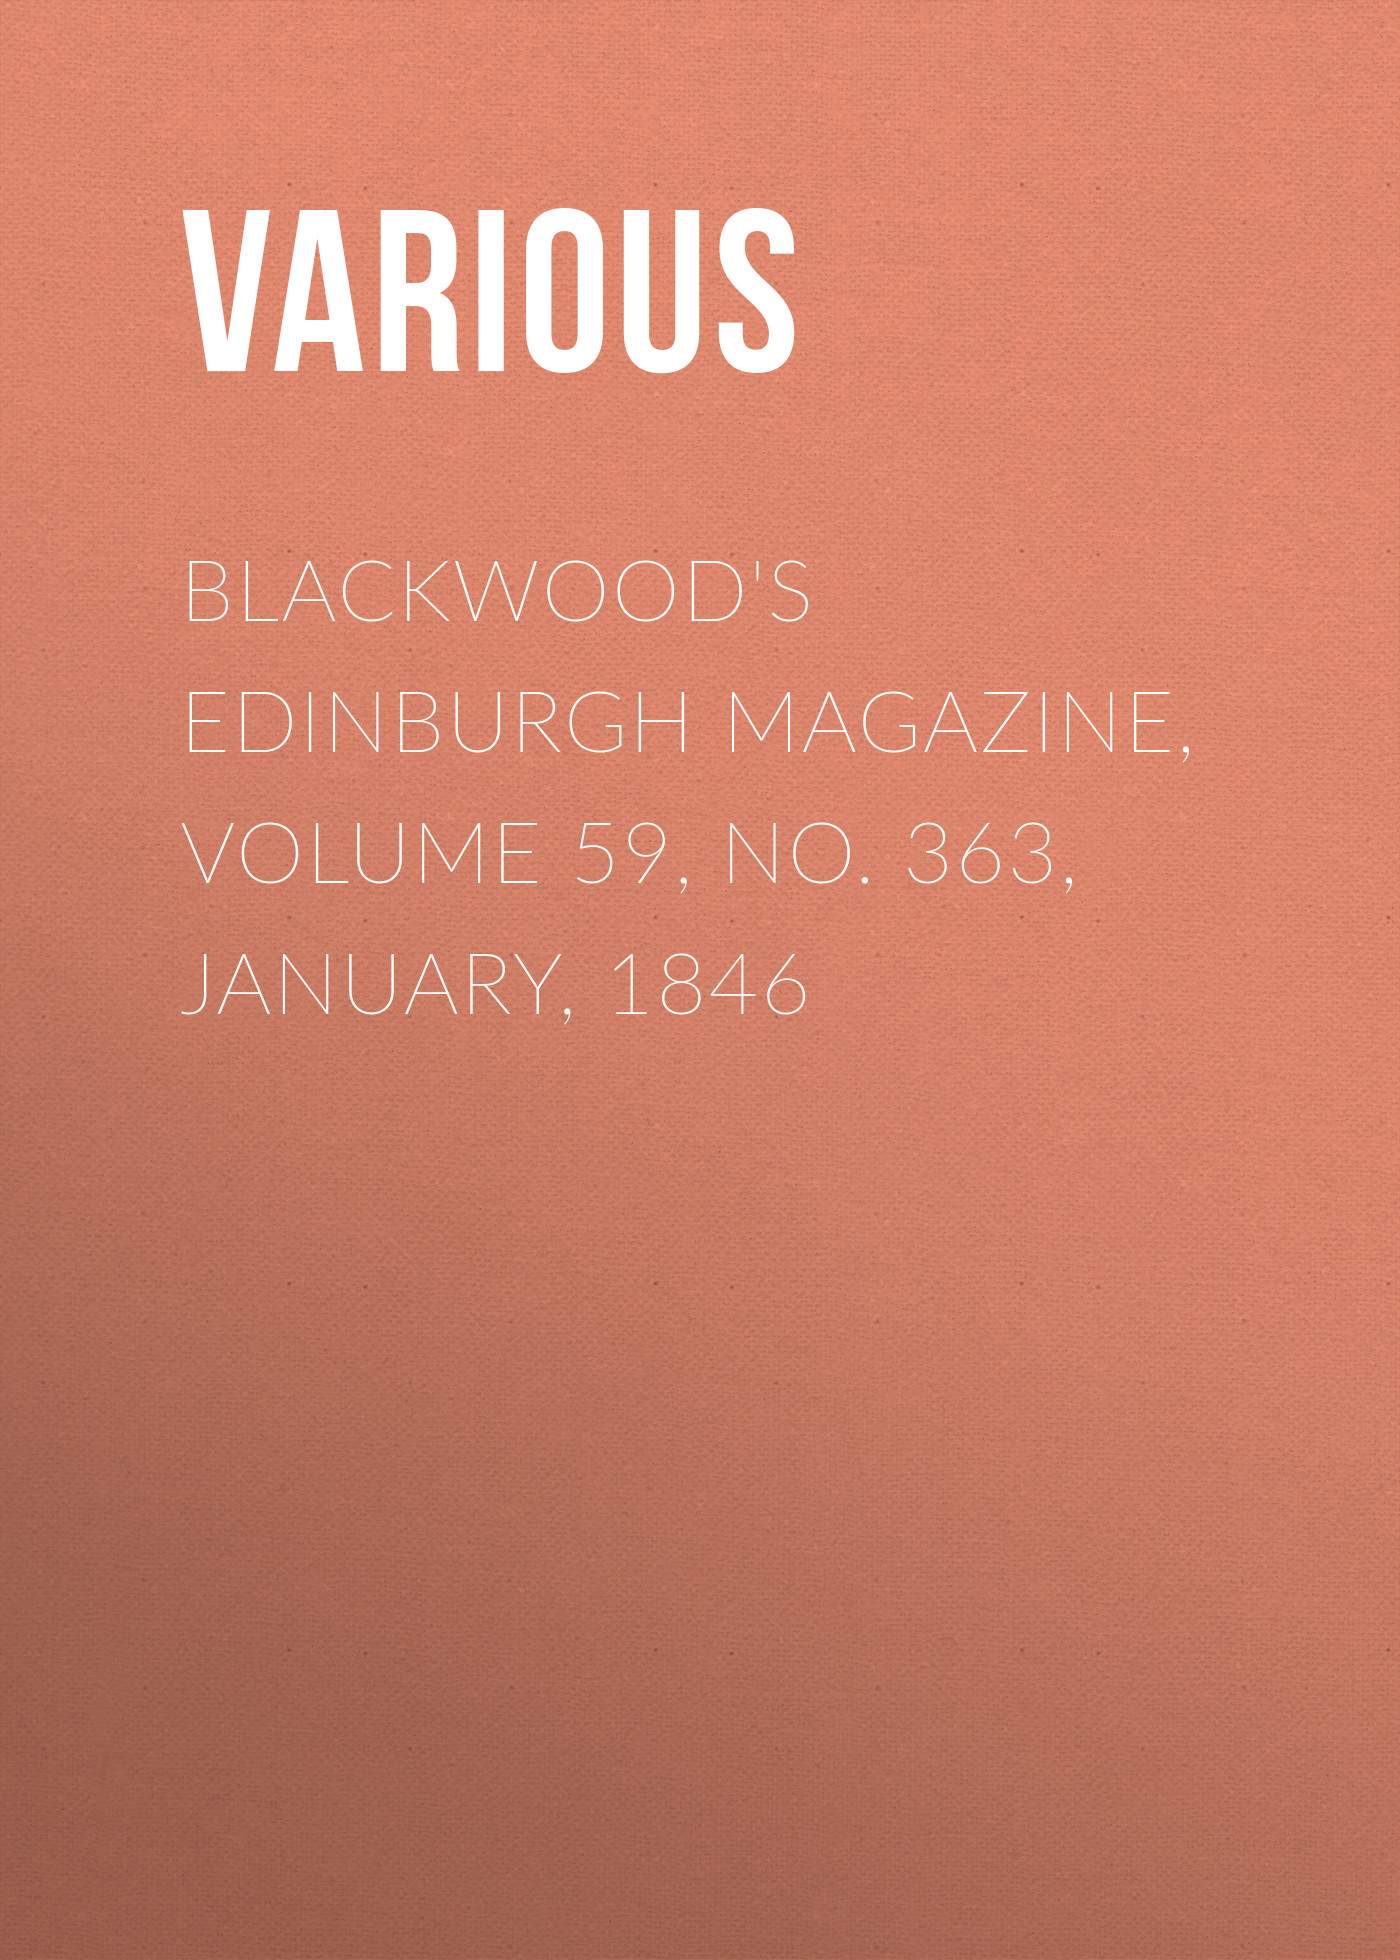 Various Blackwood's Edinburgh Magazine, Volume 59, No. 363, January, 1846 various blackwood s edinburgh magazine volume 67 no 411 january 1850